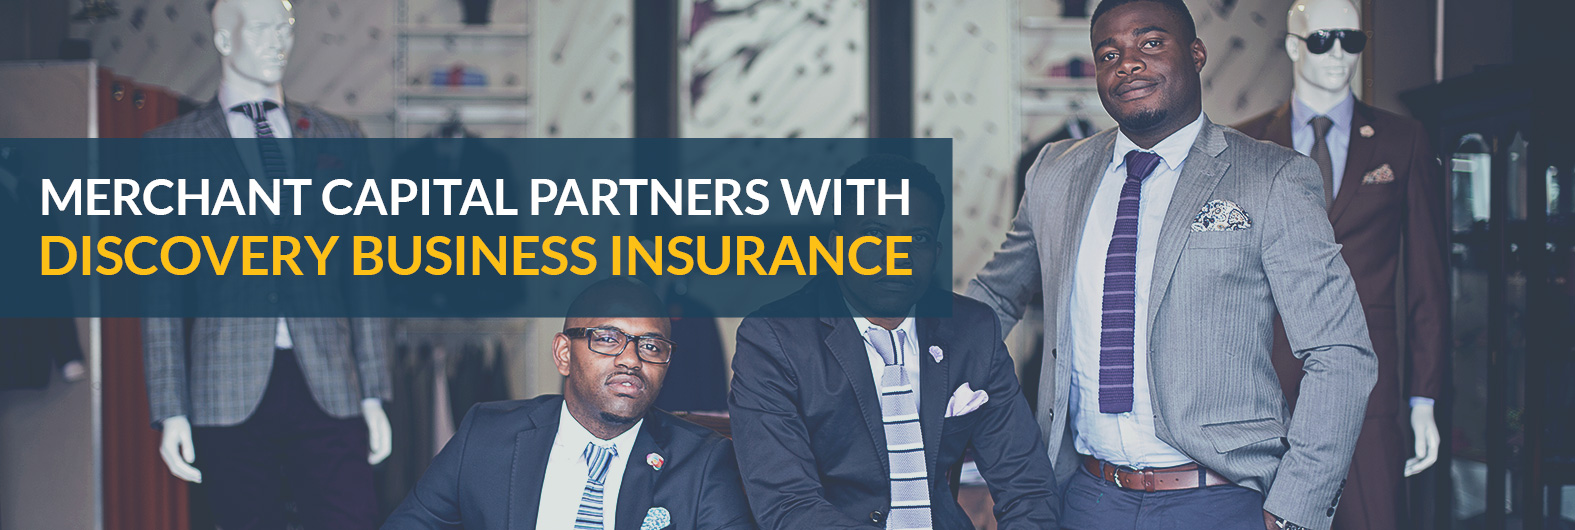 Merchant Capital partners with Discovery Business Insurance